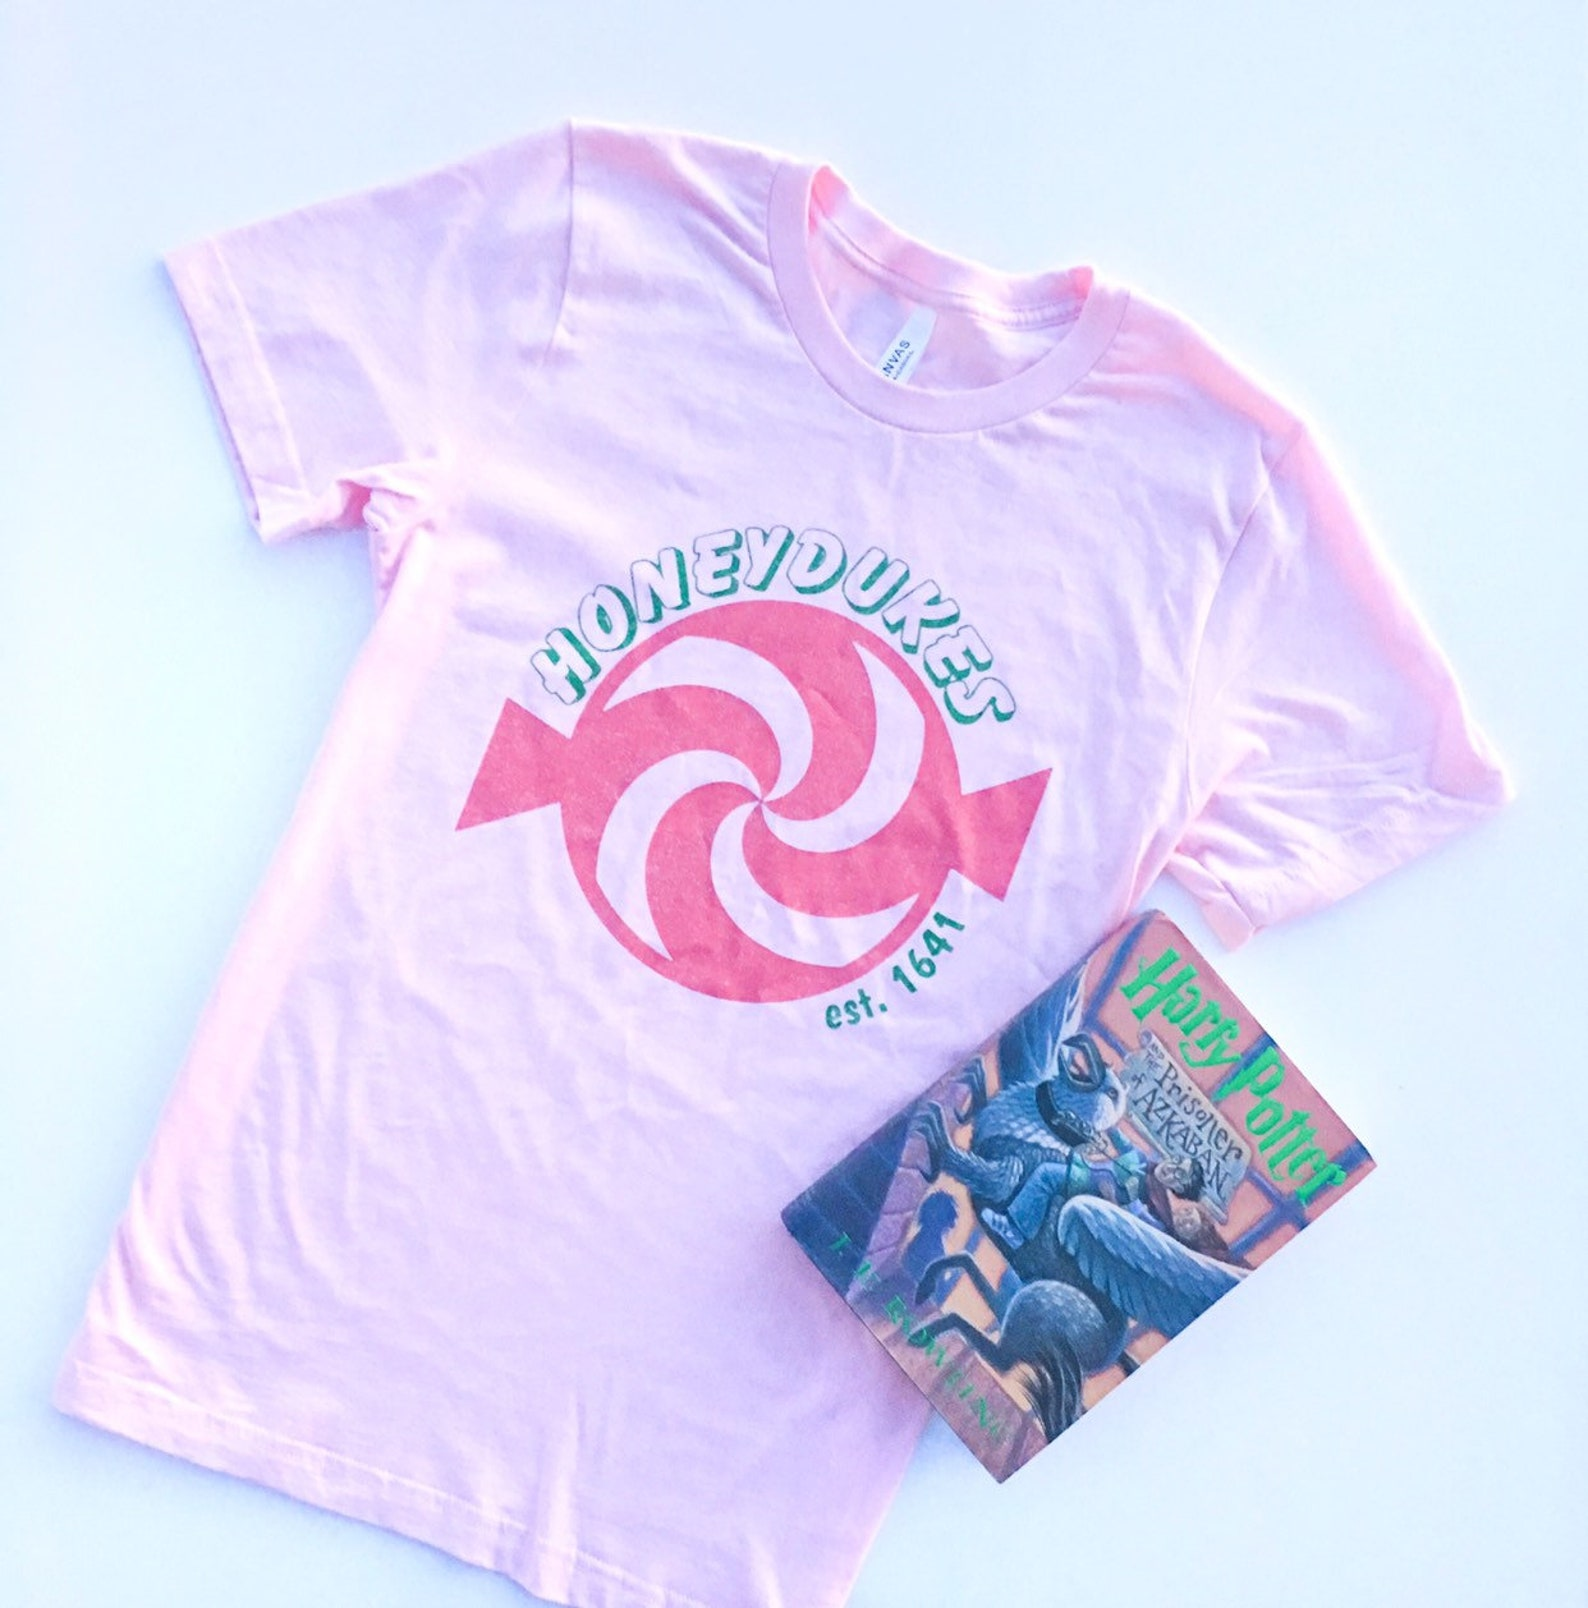 honeydukes harry potter tee with book